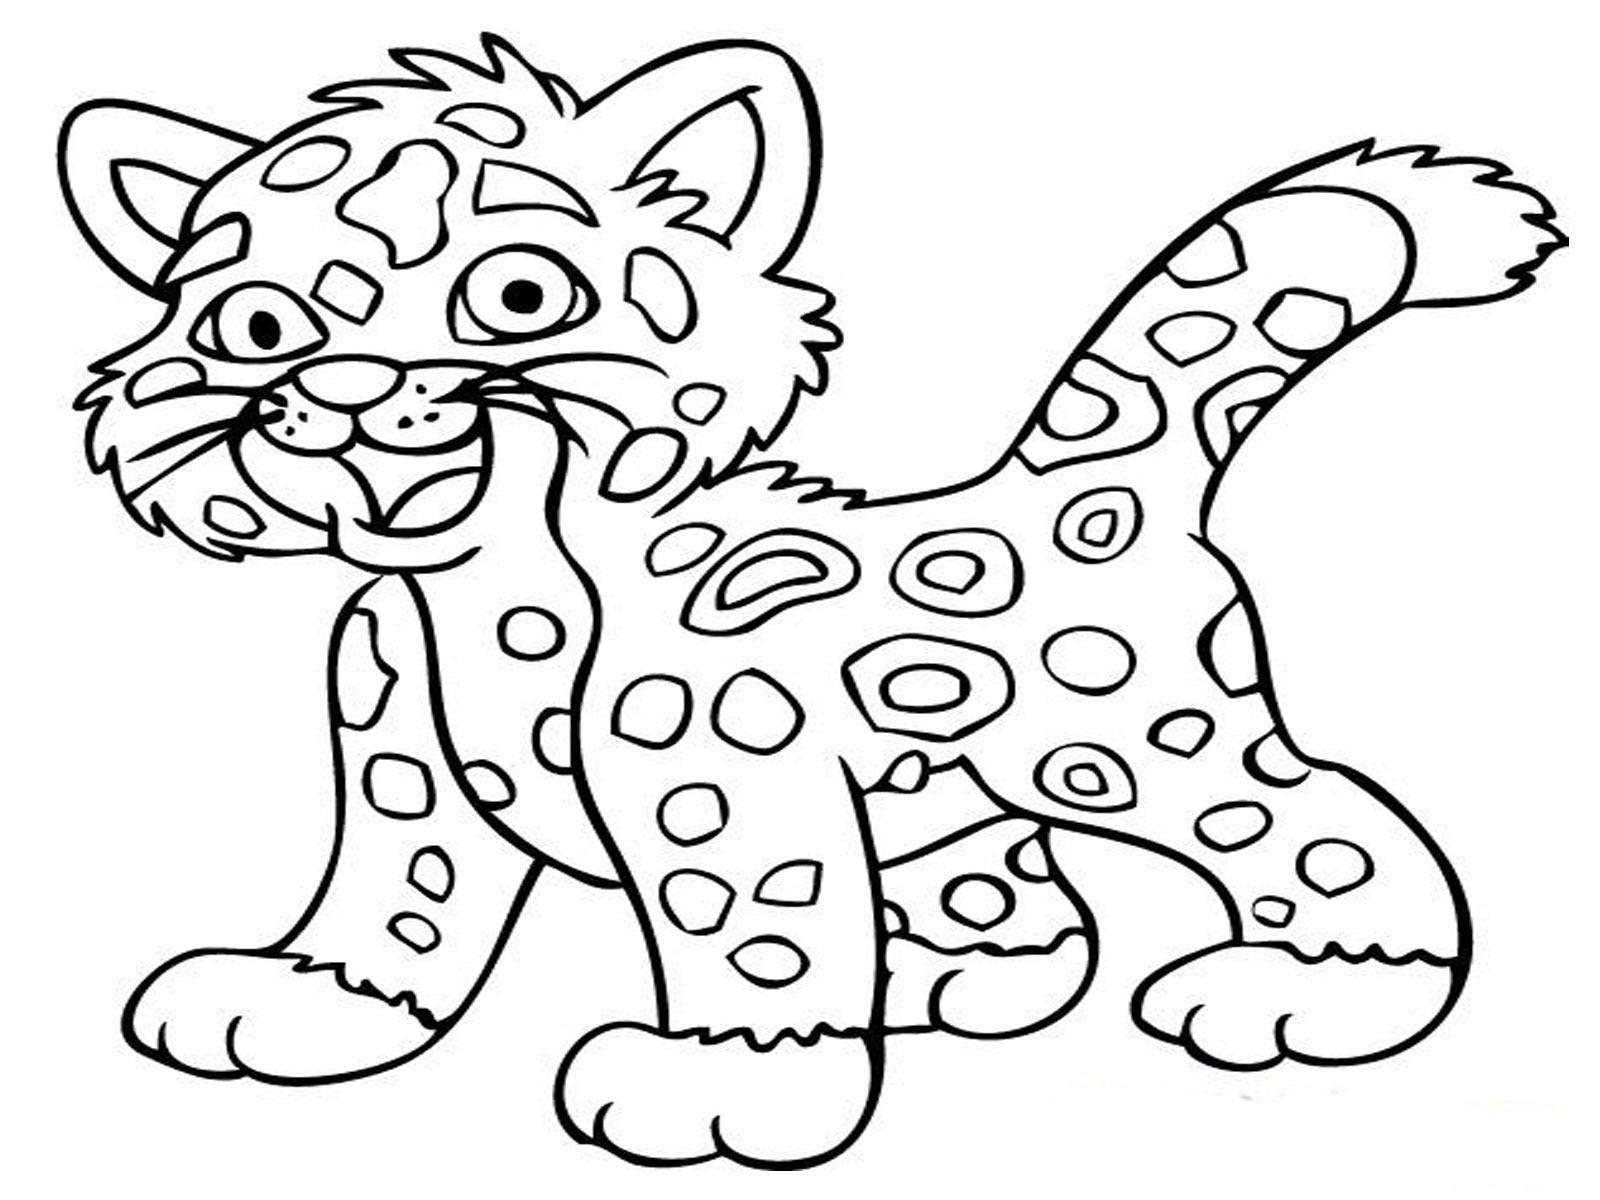 Jaguar Animal Coloring Pages Lion Coloring Pages Free Printable Coloring Pages Zoo Animal Coloring Pages